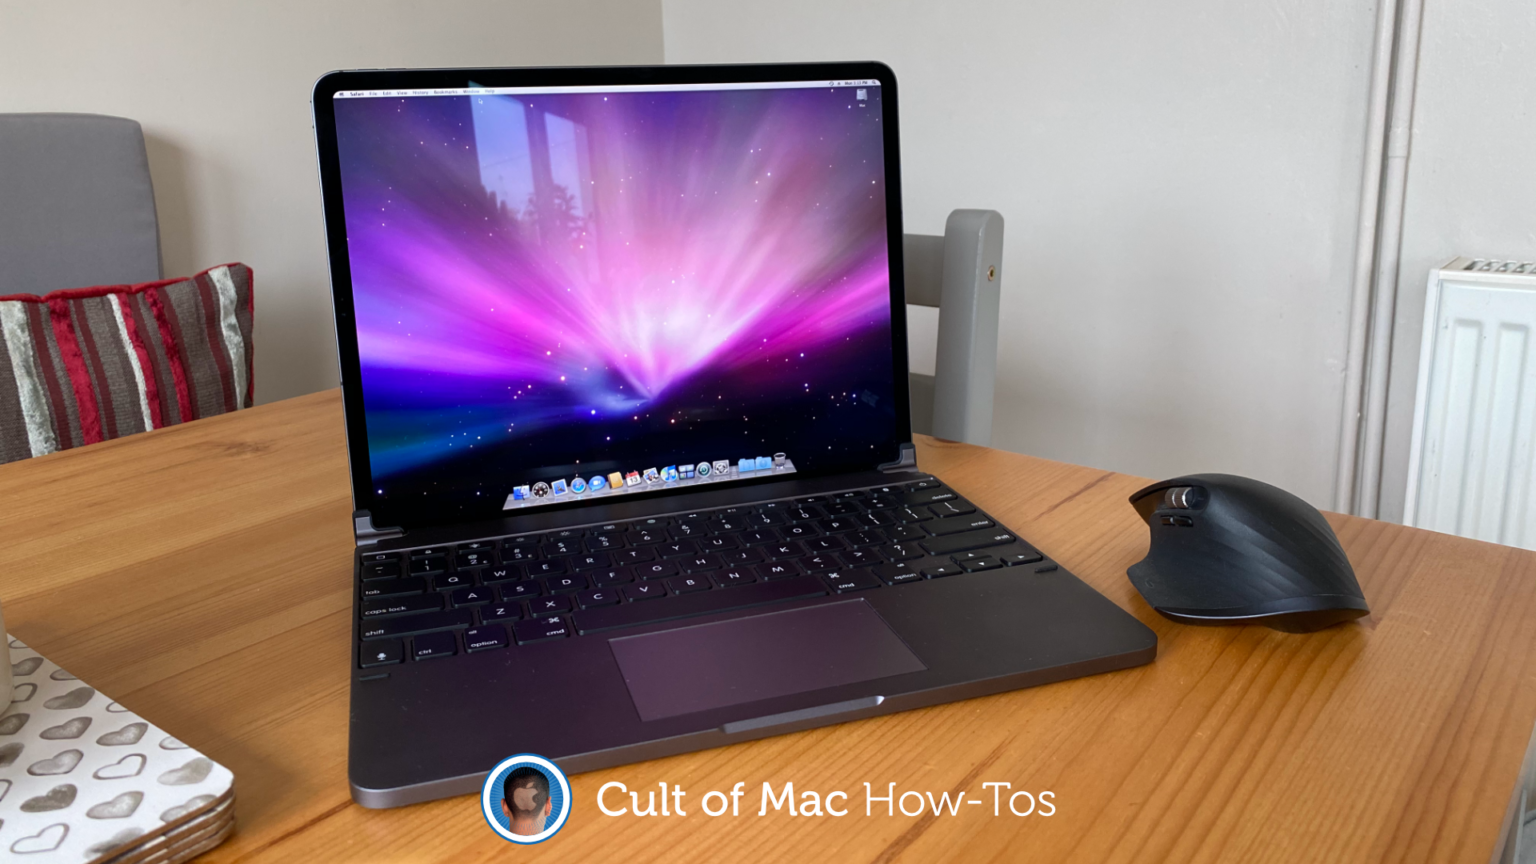 How to run Mac OS X on iPhone or iPad